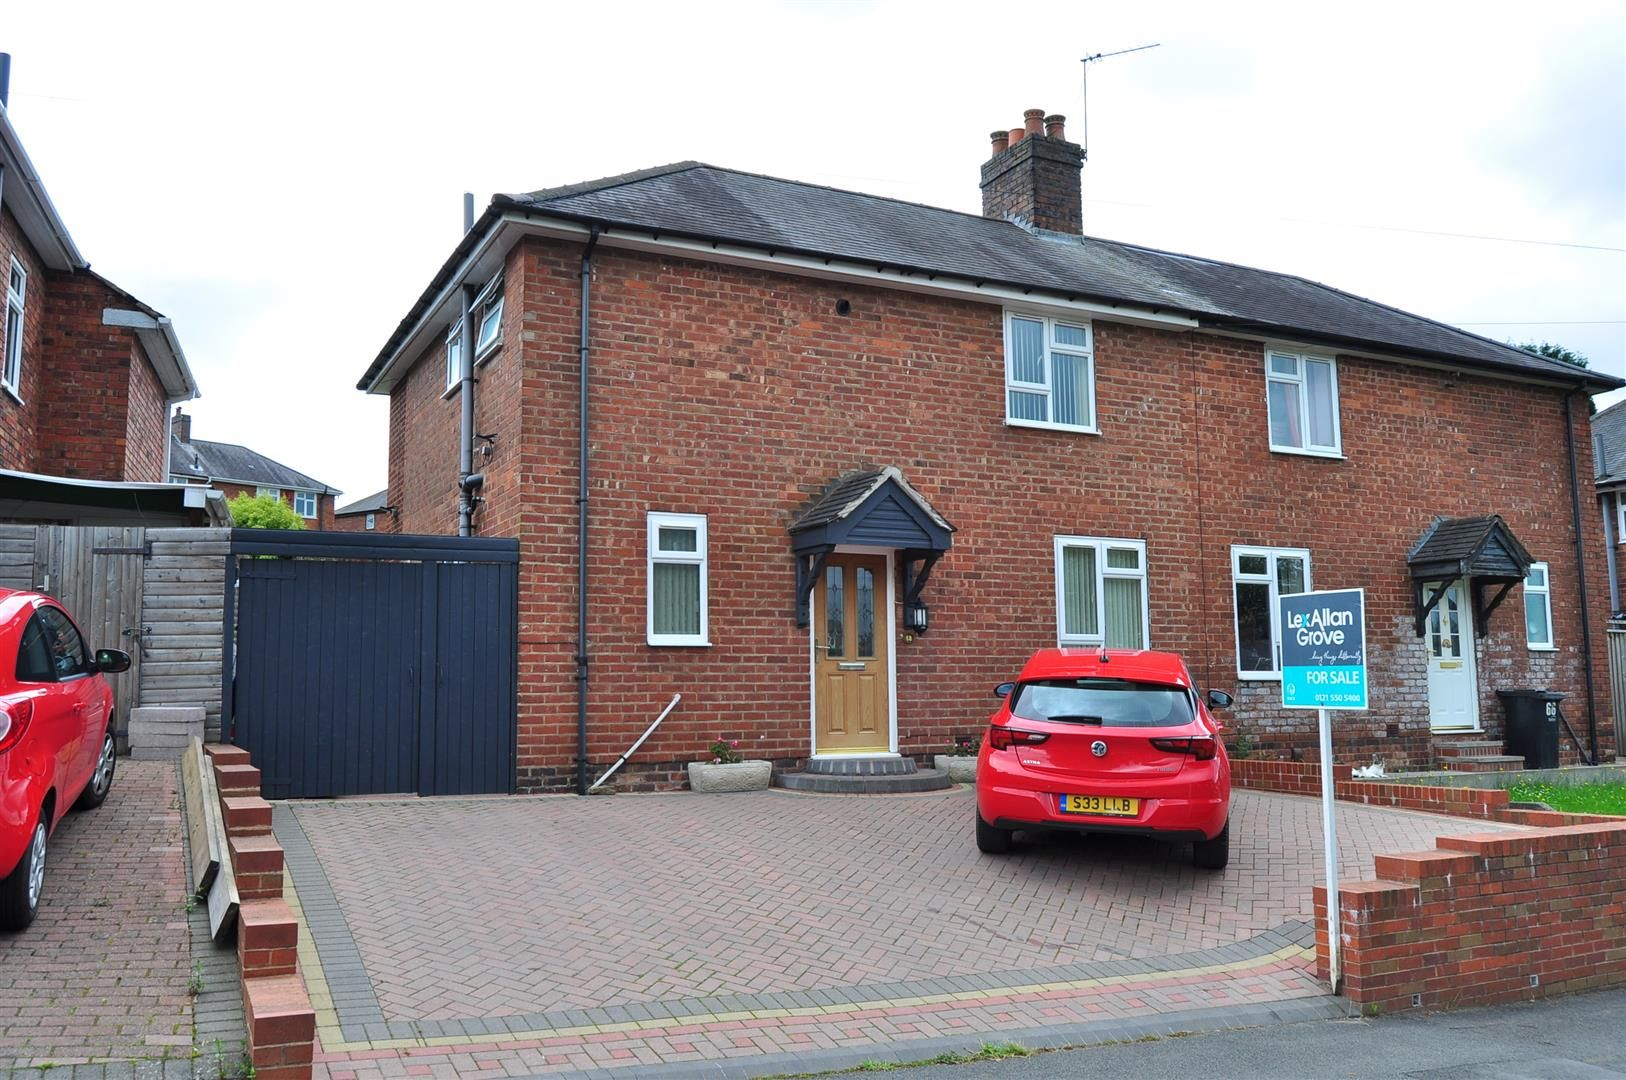 3 bed semi-detached for sale in Lower Gornal - Property Image 1